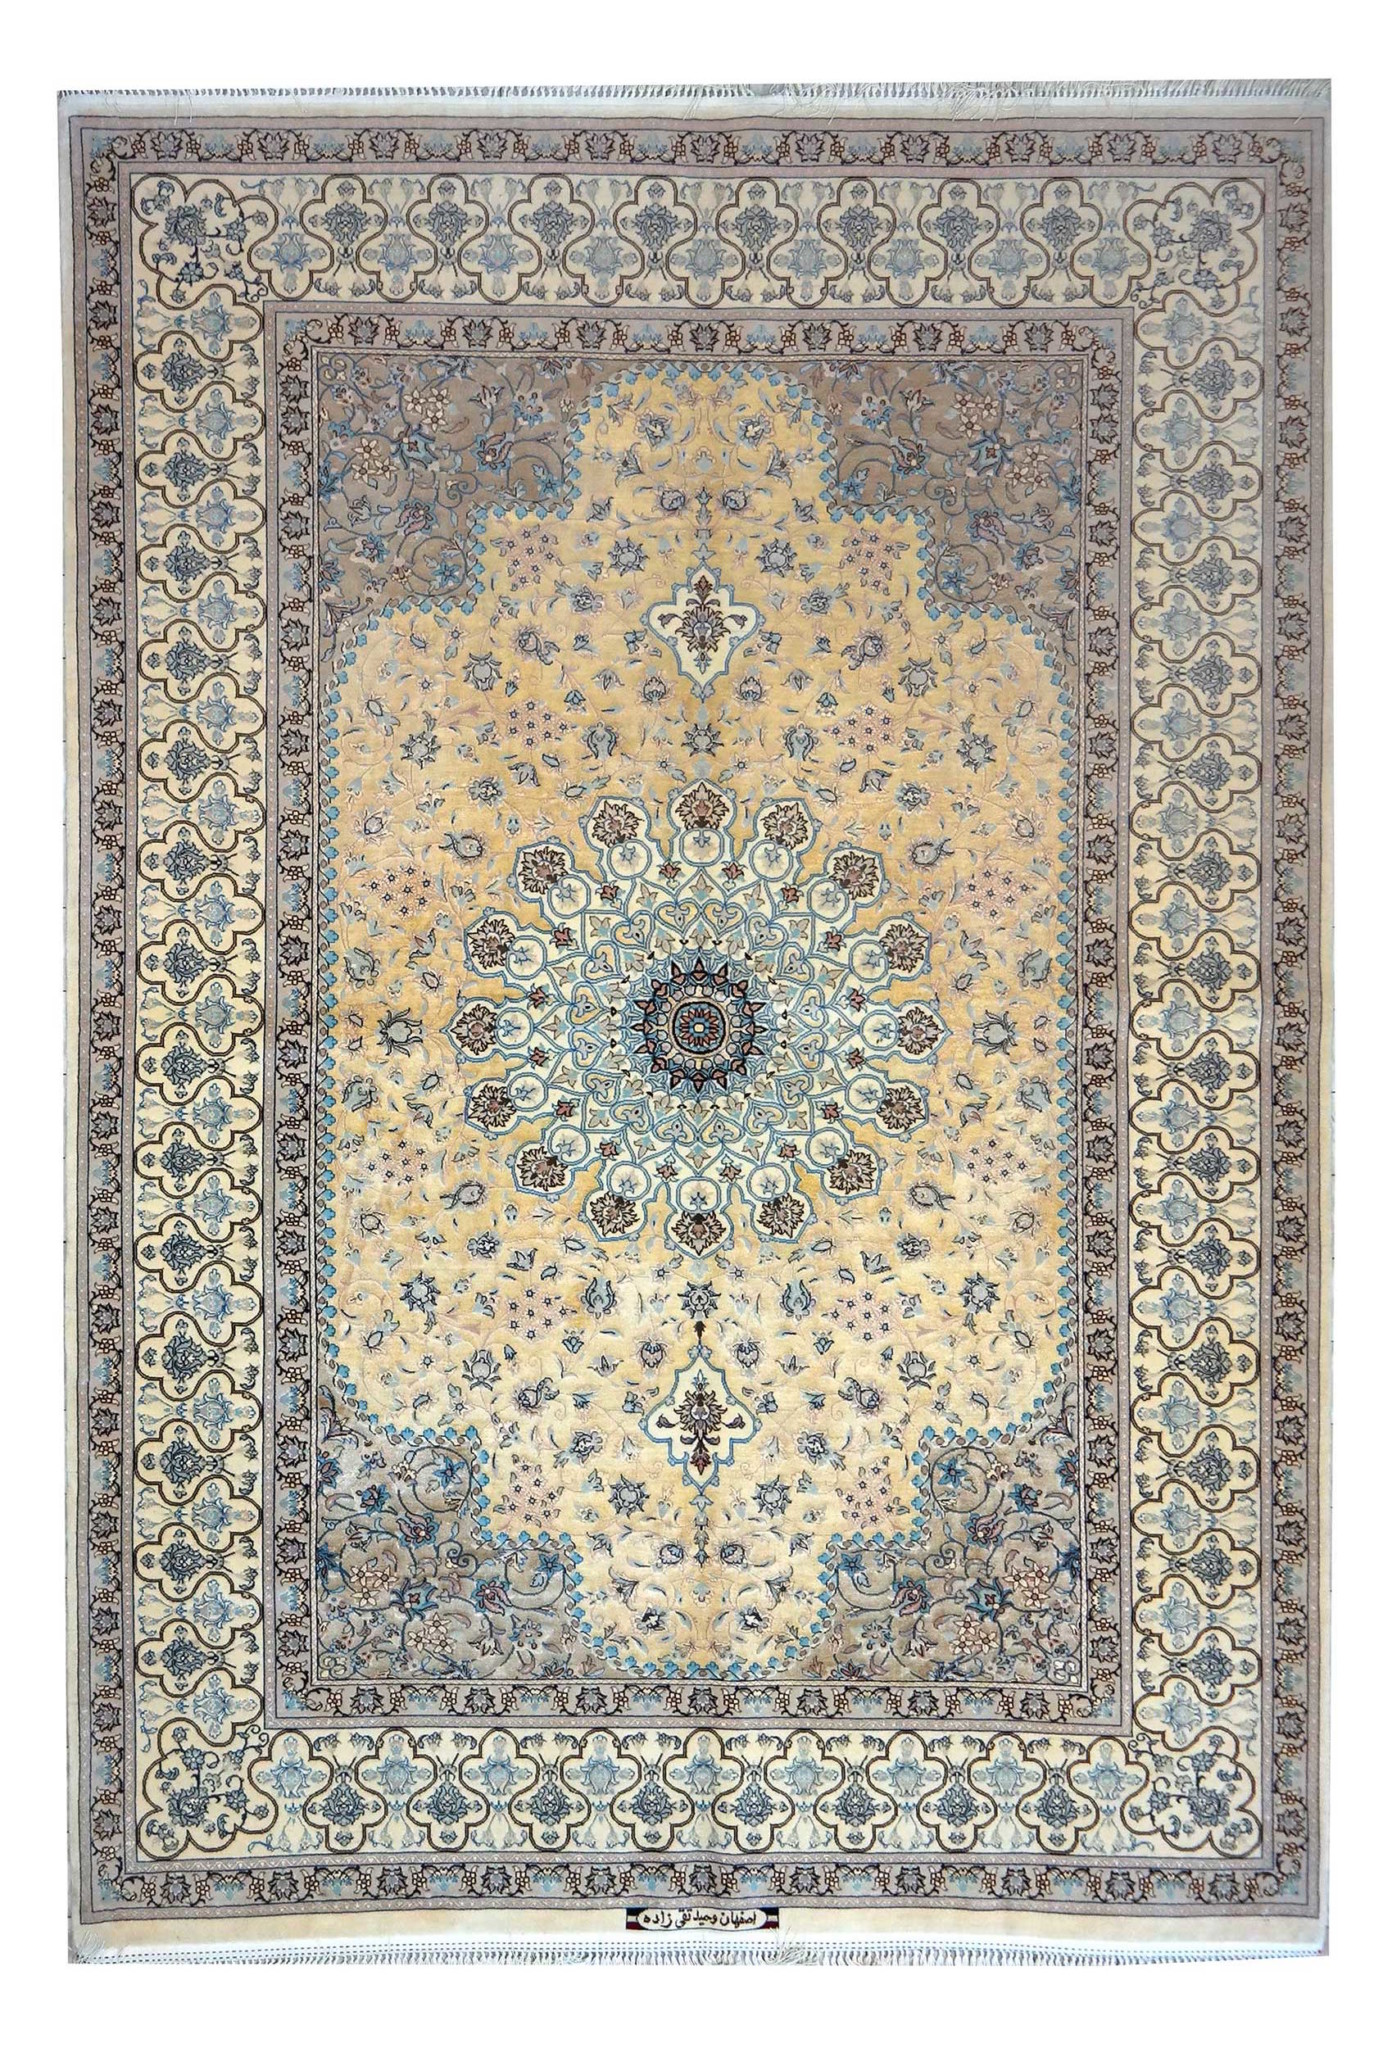 SAM_2041 esfahan extra fine silk background , weave and warp in silk, Rare example, Dimensions 225 x 154